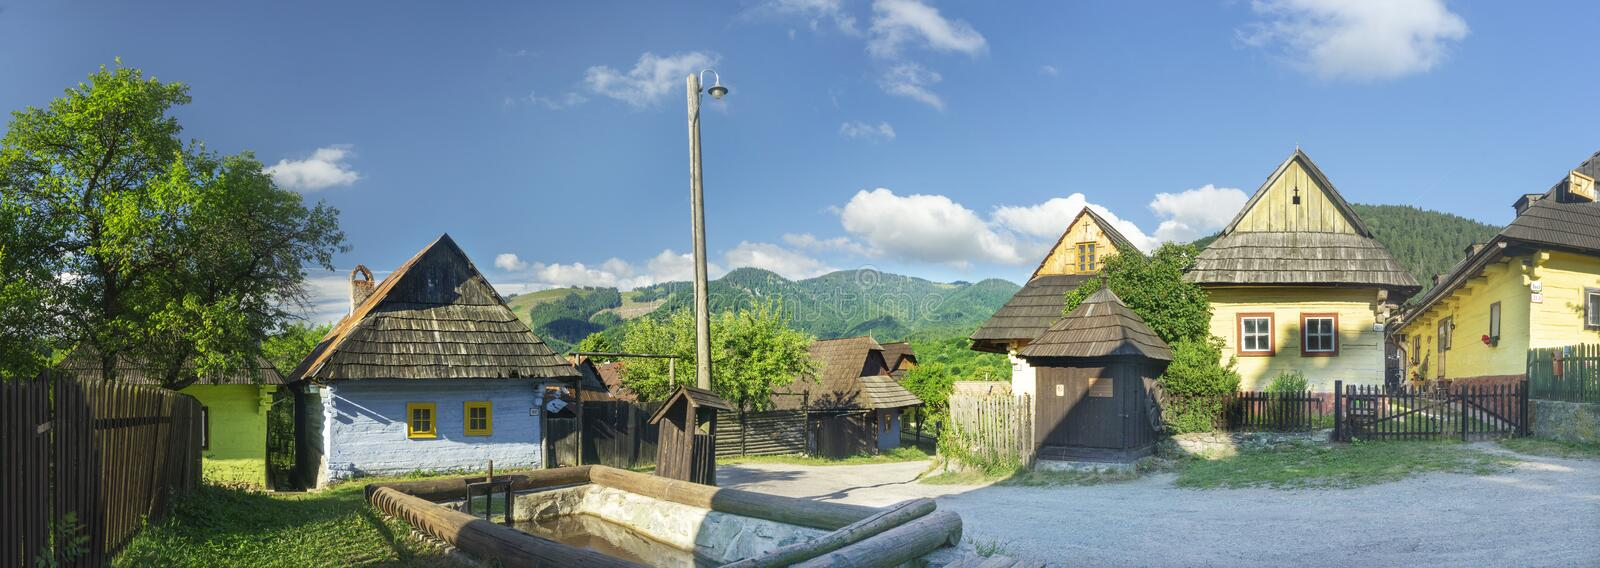 Vlkolinec panorama. Vlkolinec is a folk architecture reservation at Slovakia. The village has been listed as a UNESCO World Heritage site since 1993. It is rare royalty free stock photos